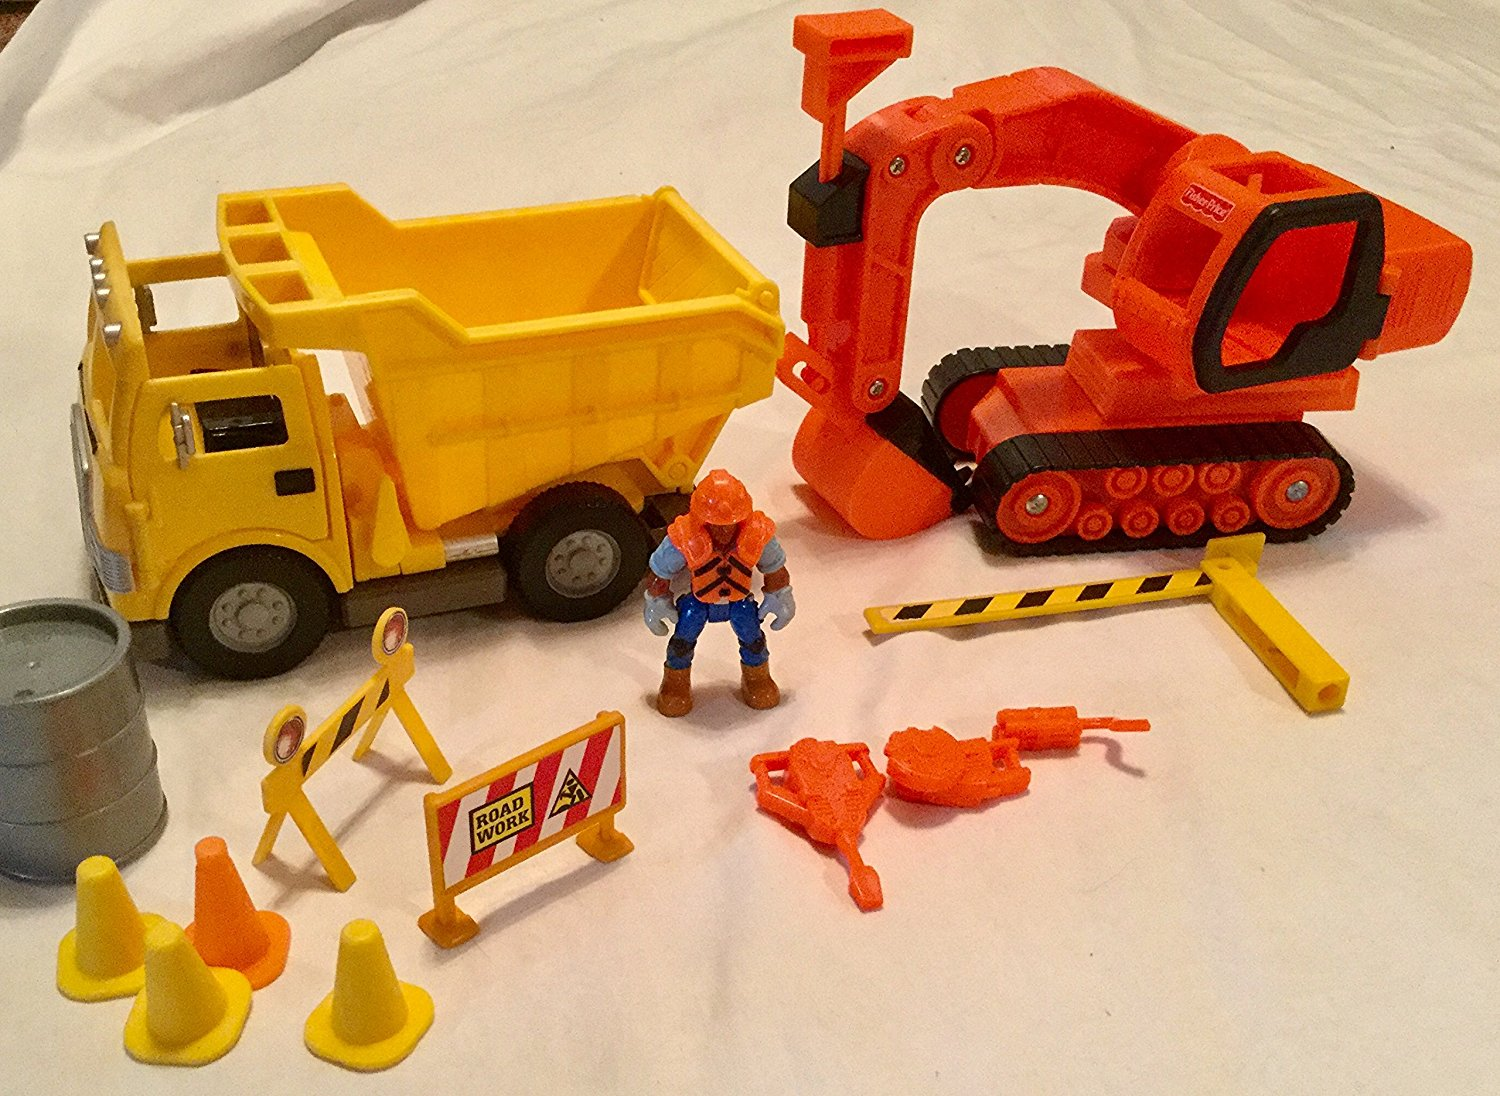 Fisher Price, Imaginext Construction Site #78330. 2002 (Incomplete, see description & photos)